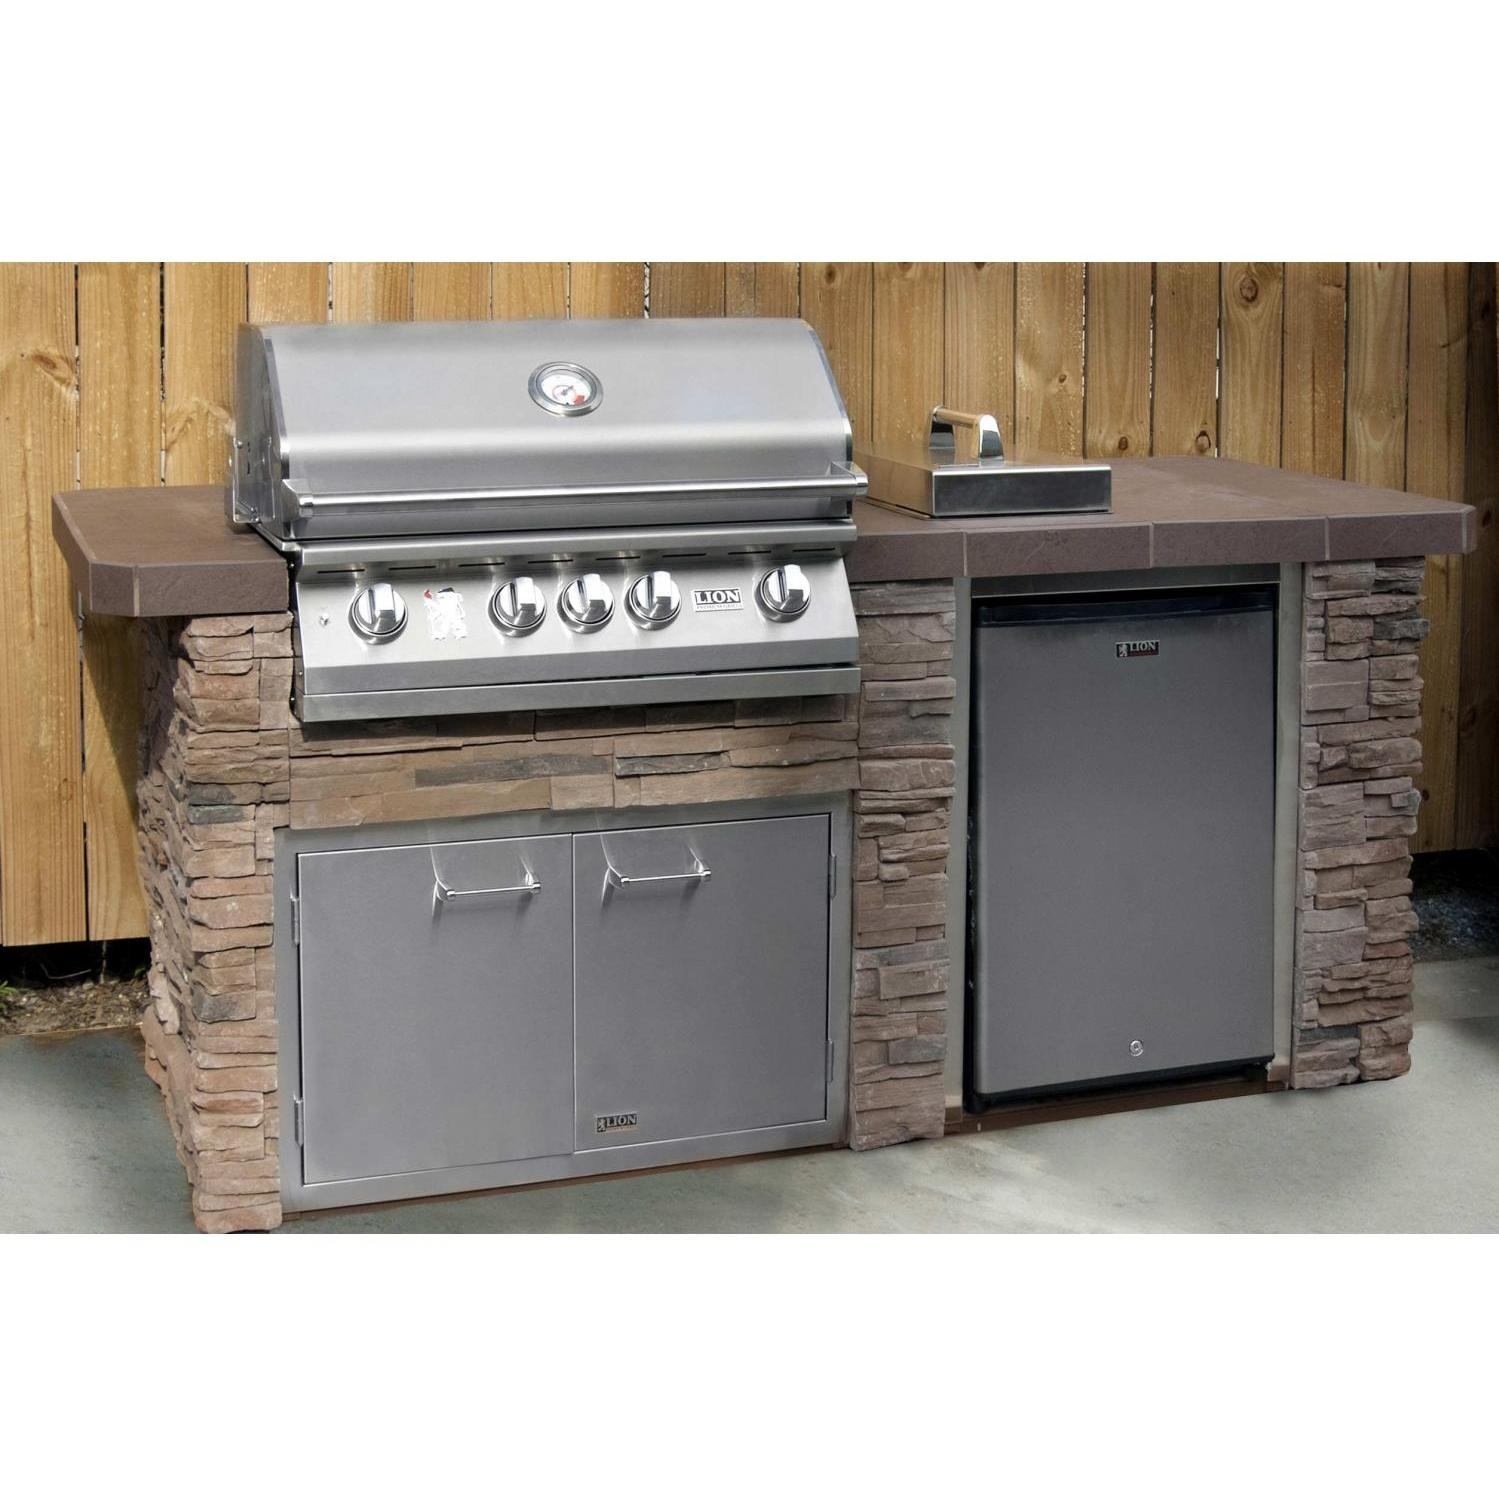 Lion Advanced Q 7 Piece BBQ Island With Lion L75000 32-Inch Propane Gas Grill